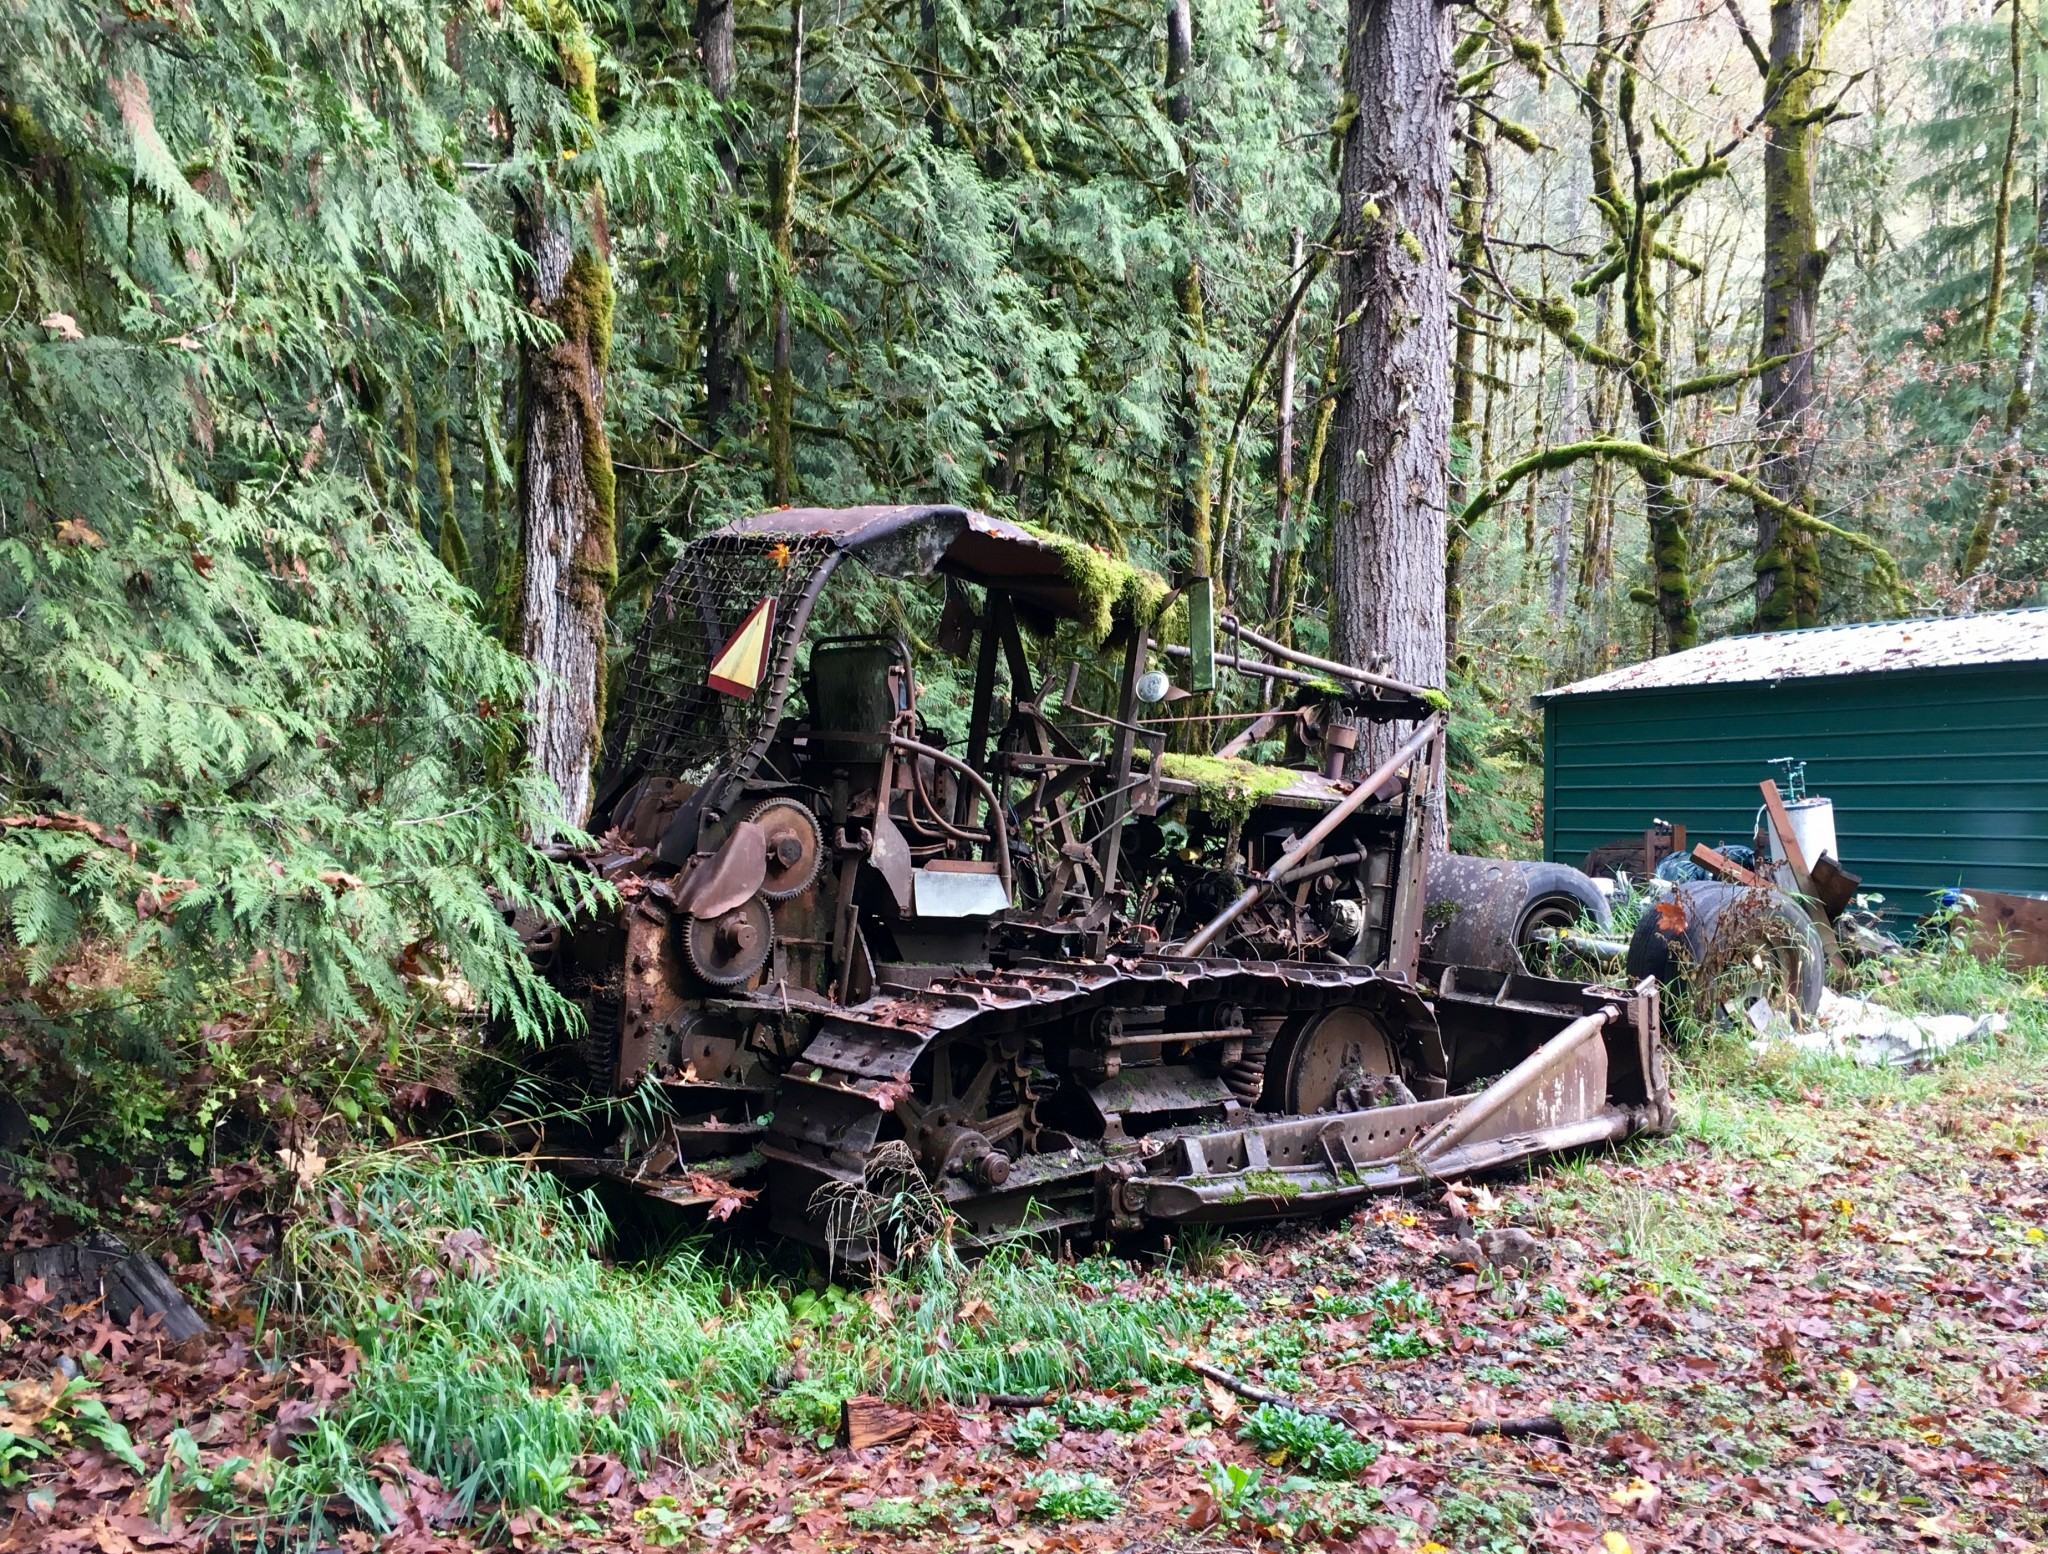 Giant yard art; it works in the woods.